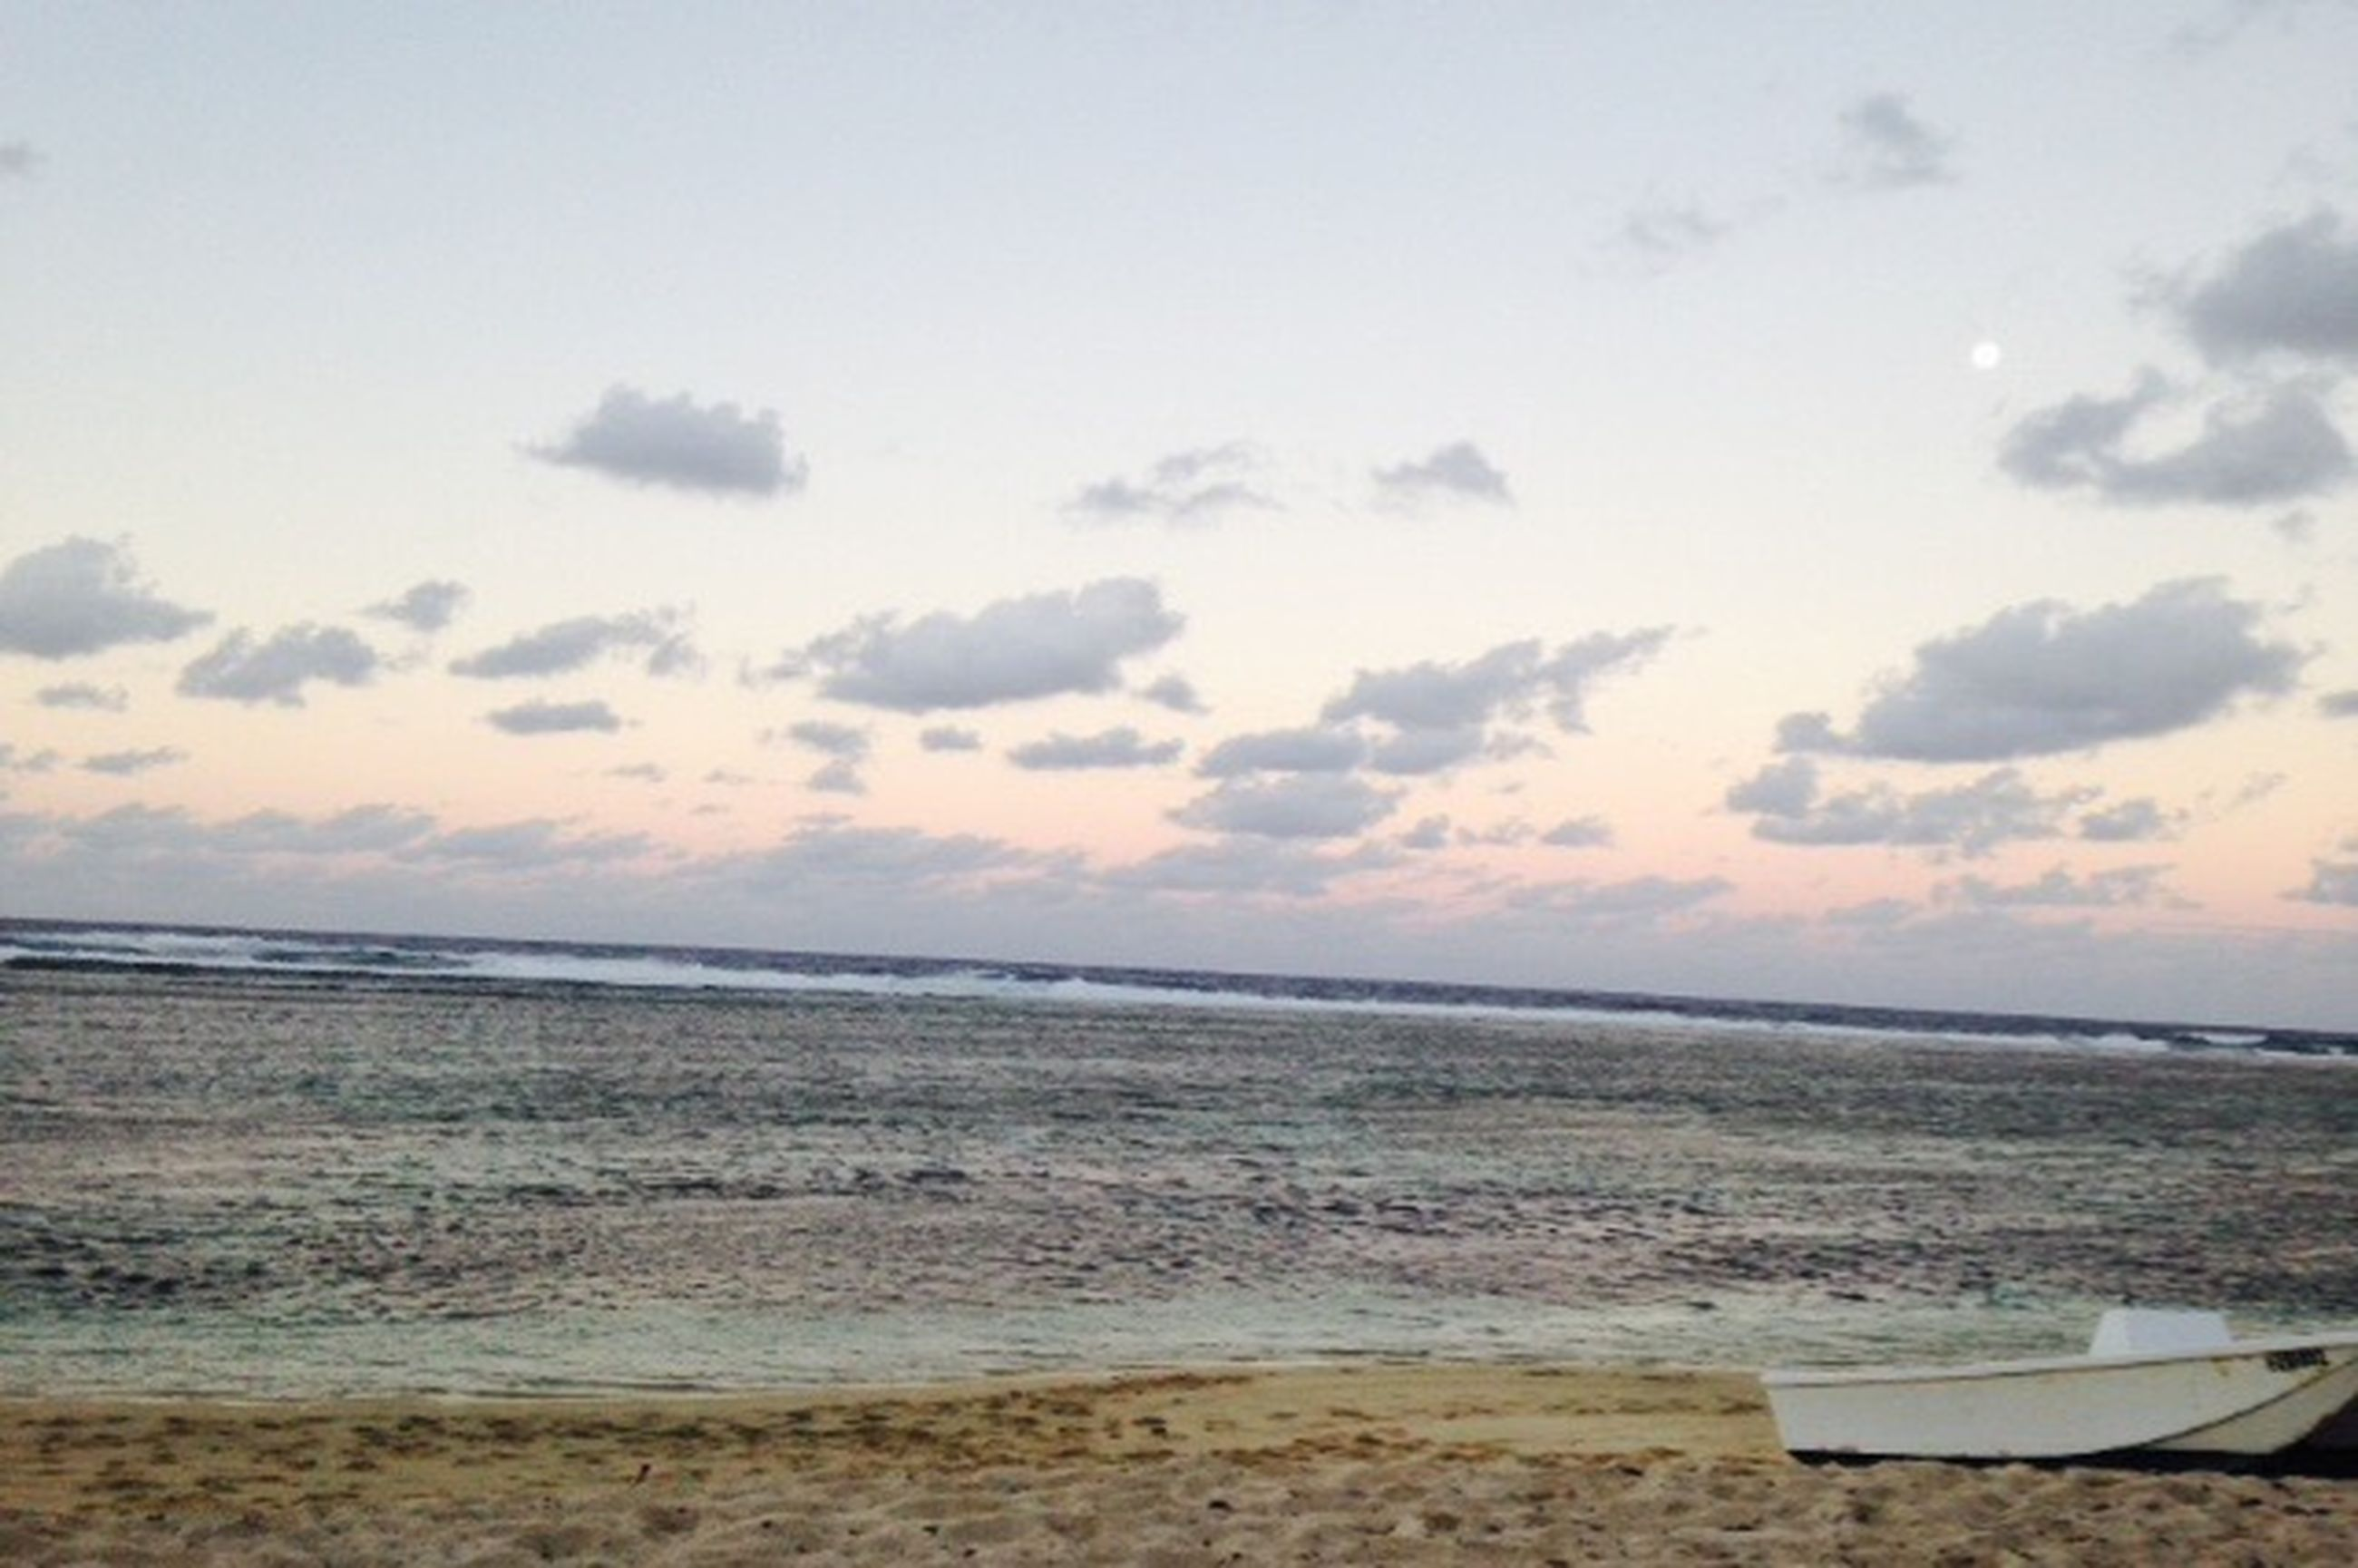 sea, beach, horizon over water, water, shore, sky, tranquil scene, tranquility, sand, scenics, beauty in nature, nature, cloud - sky, idyllic, coastline, cloud, calm, outdoors, remote, vacations